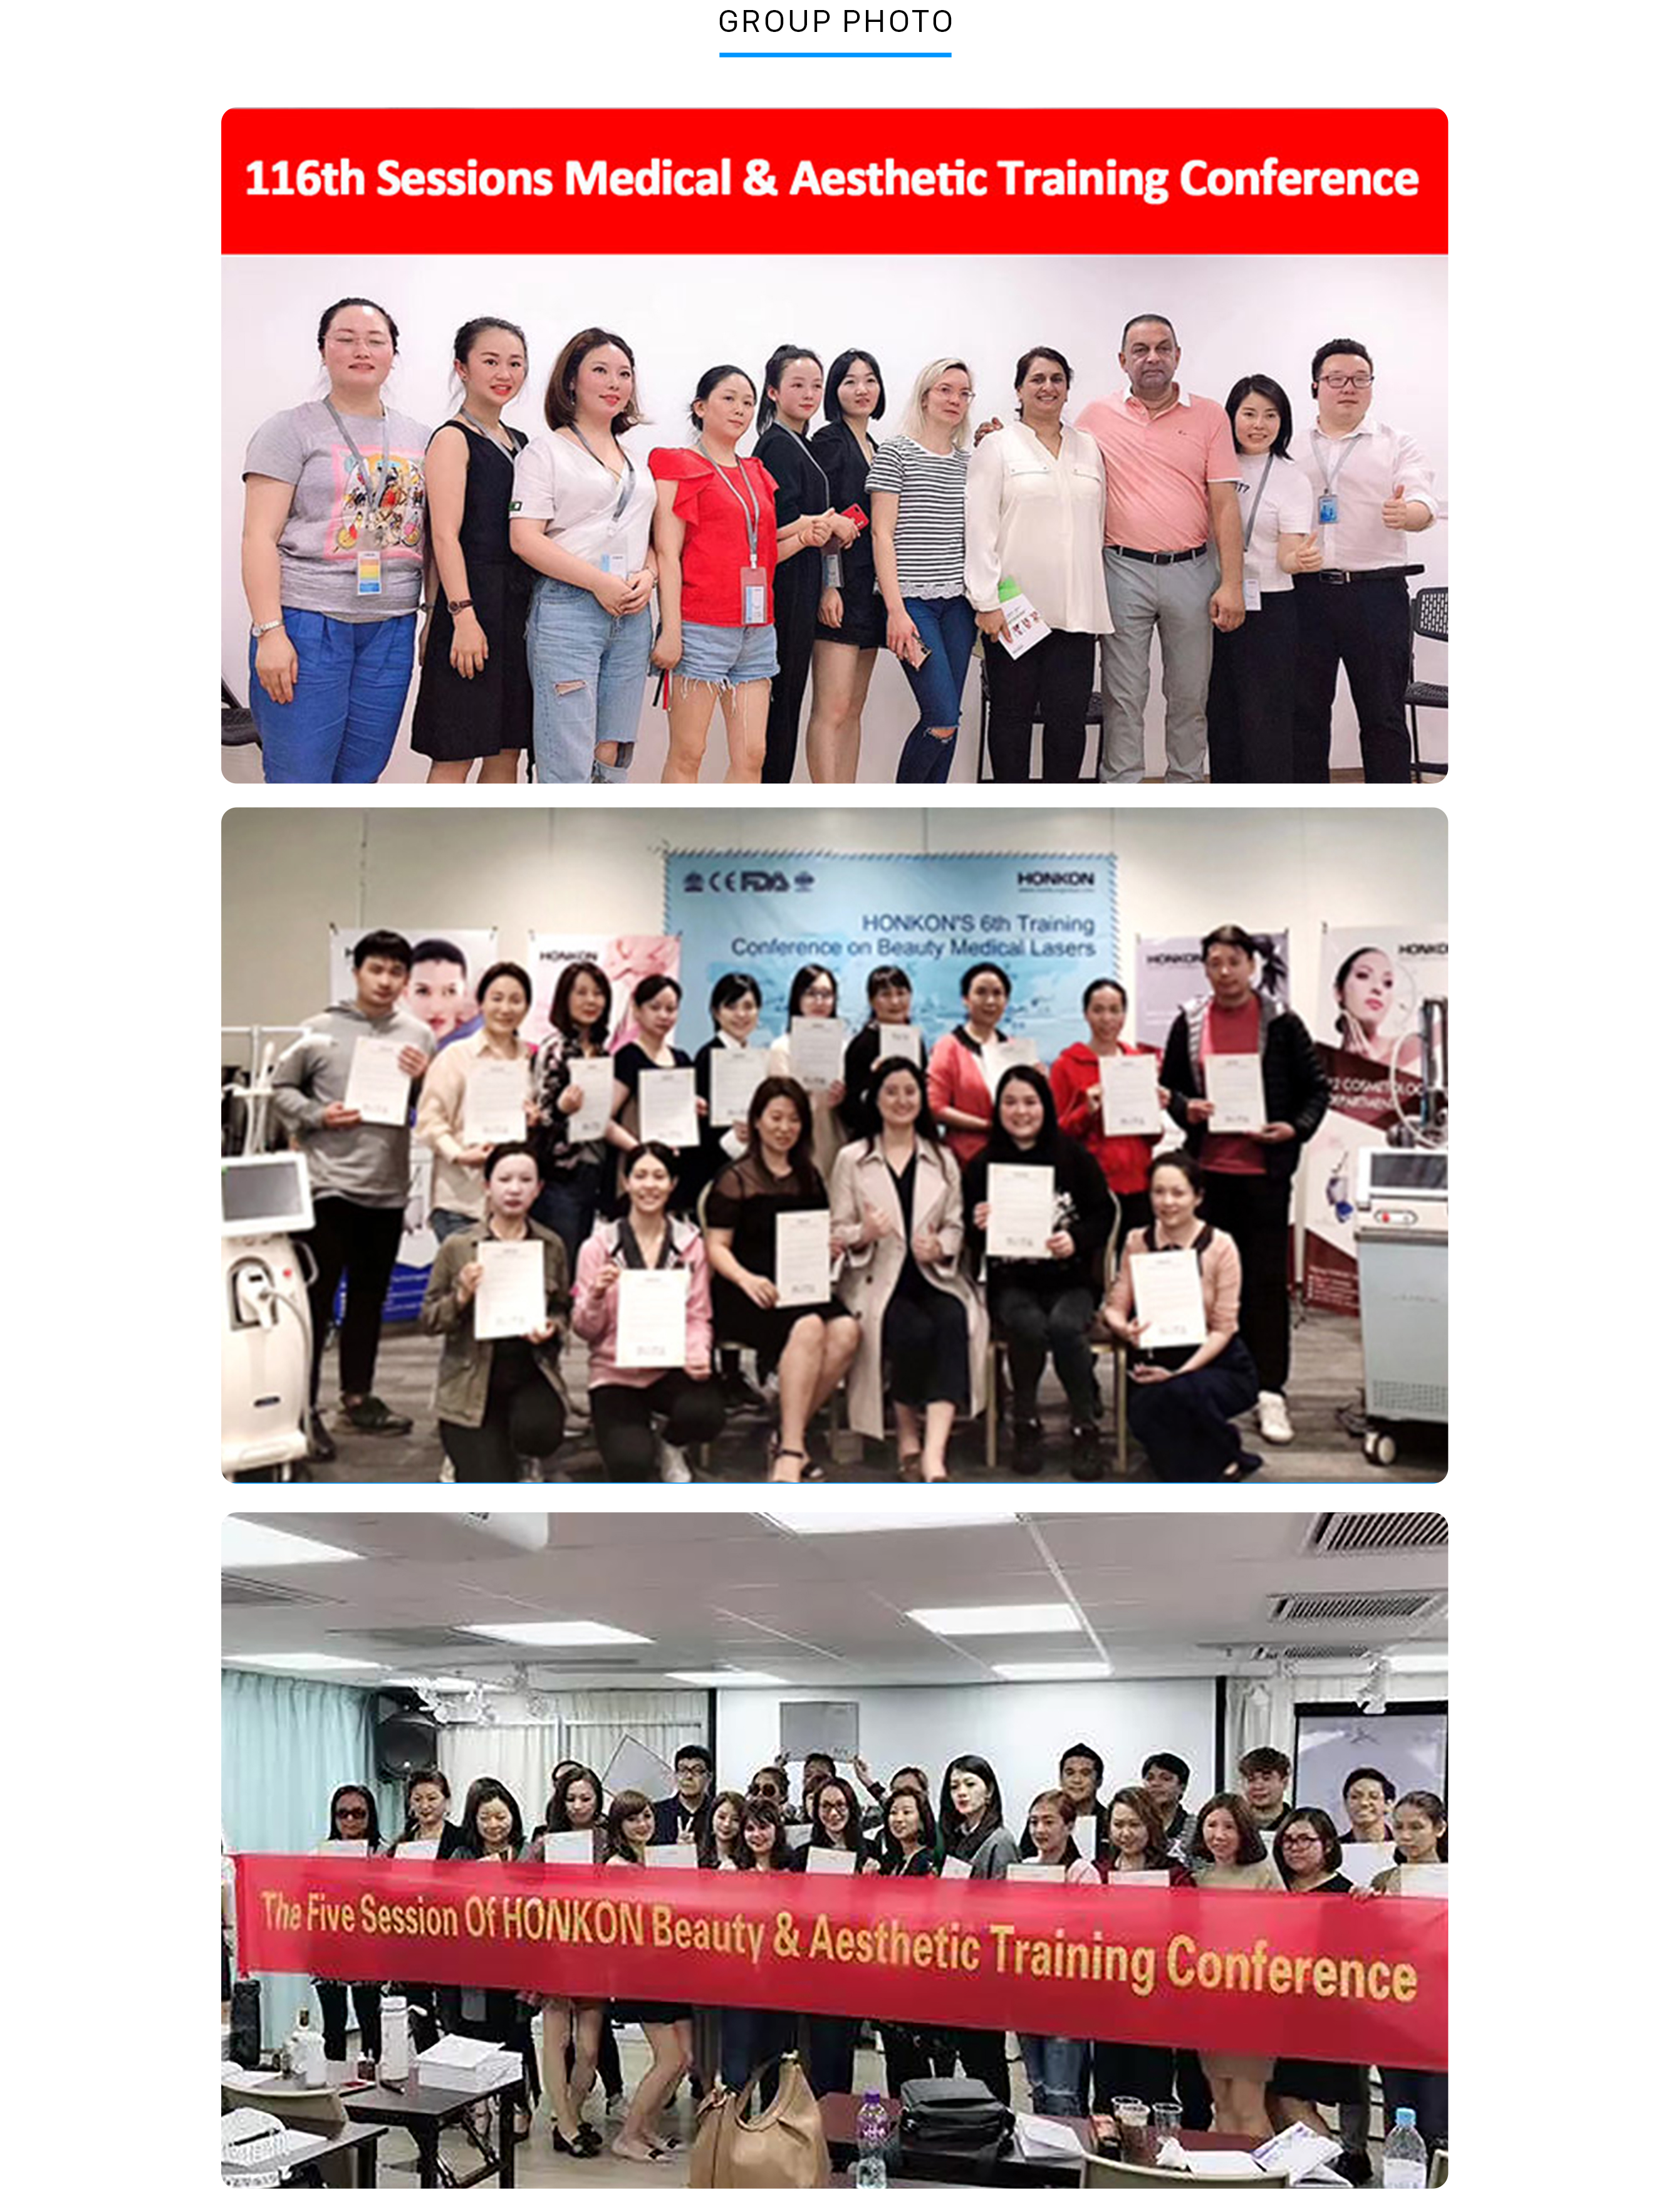 The 146th Session HONKON Medical & Aesthetic Training Conference